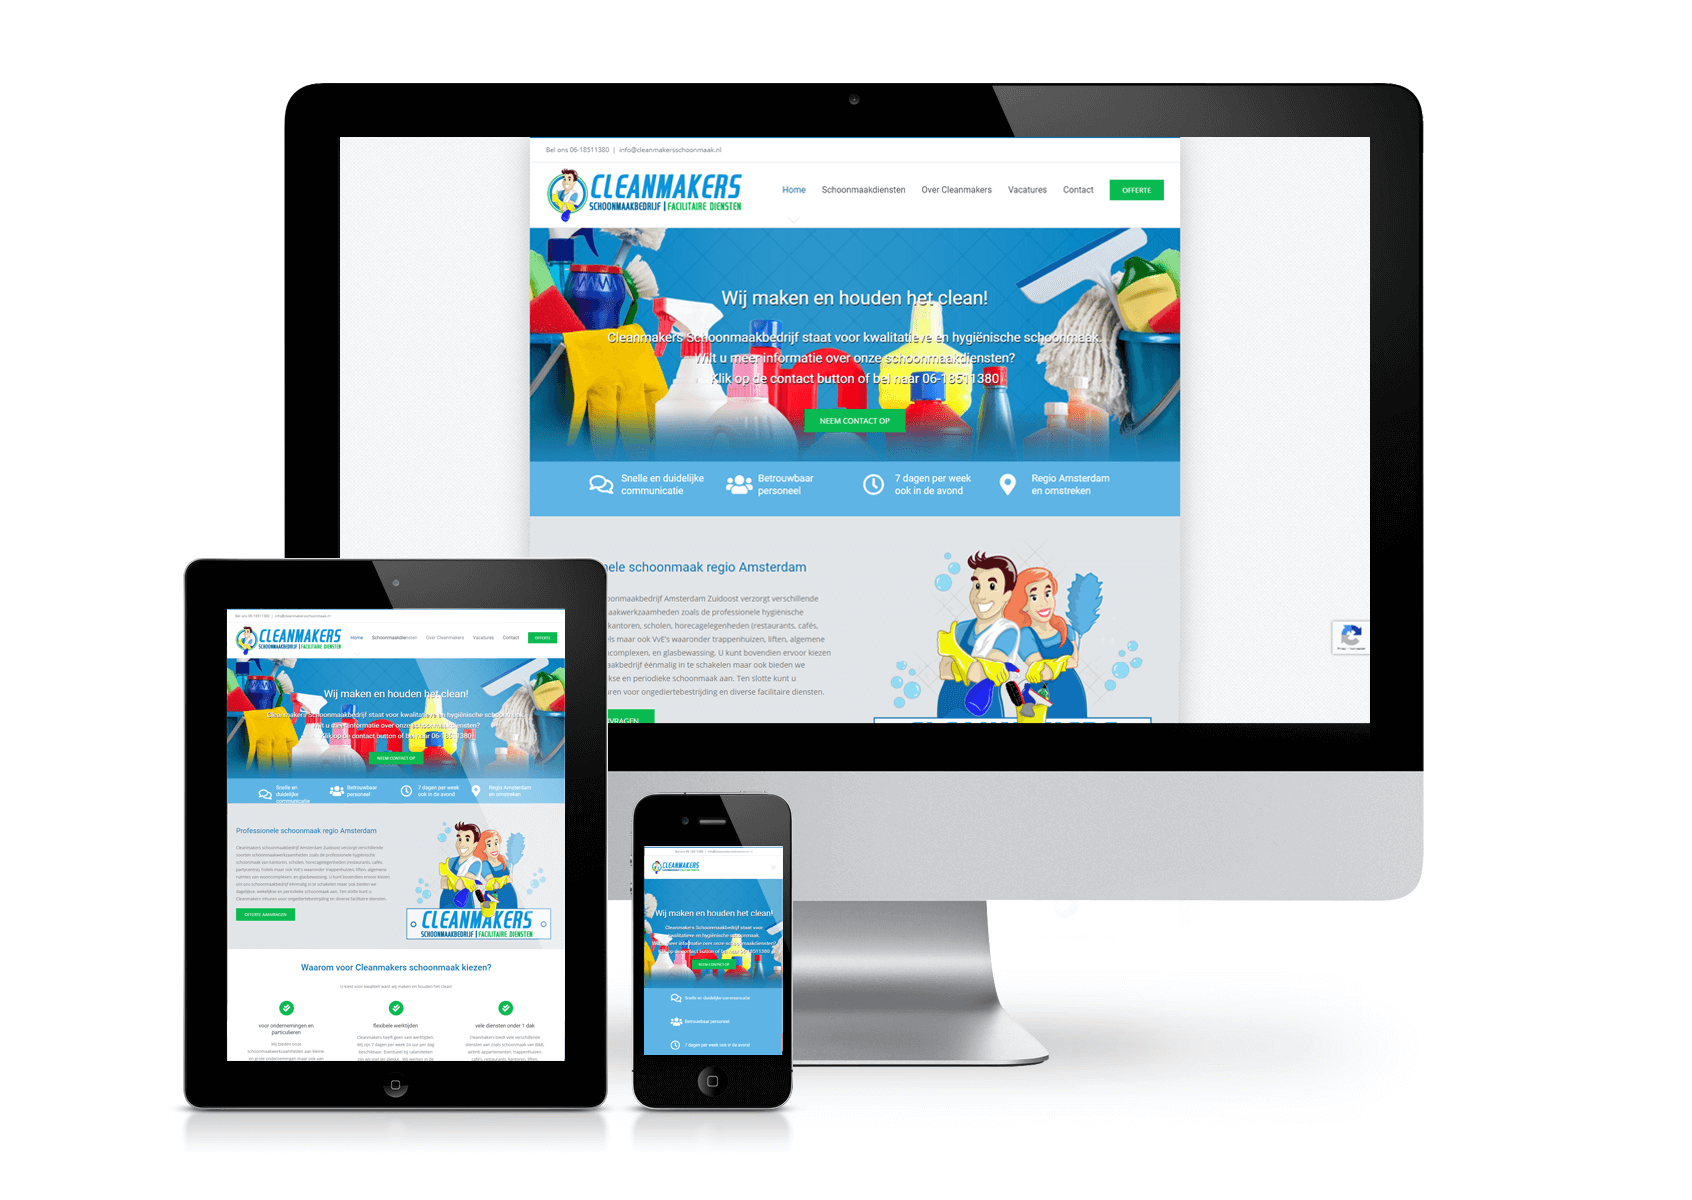 Cleanmakers-schoonmaak_rickidwebdesign